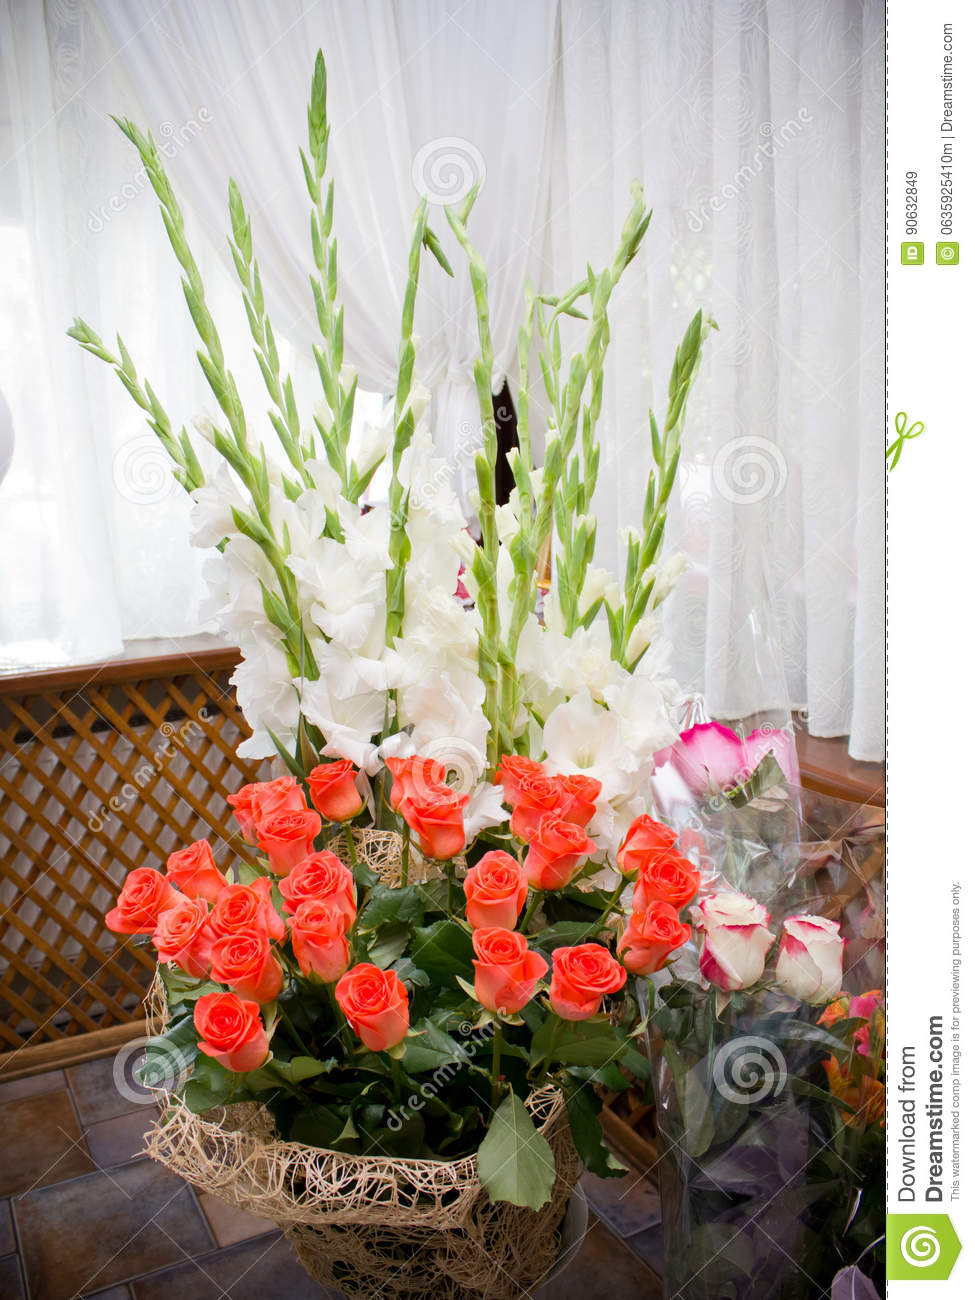 Huge Bouquets Of Flowers Stock Image Image Of Flowers 90632849